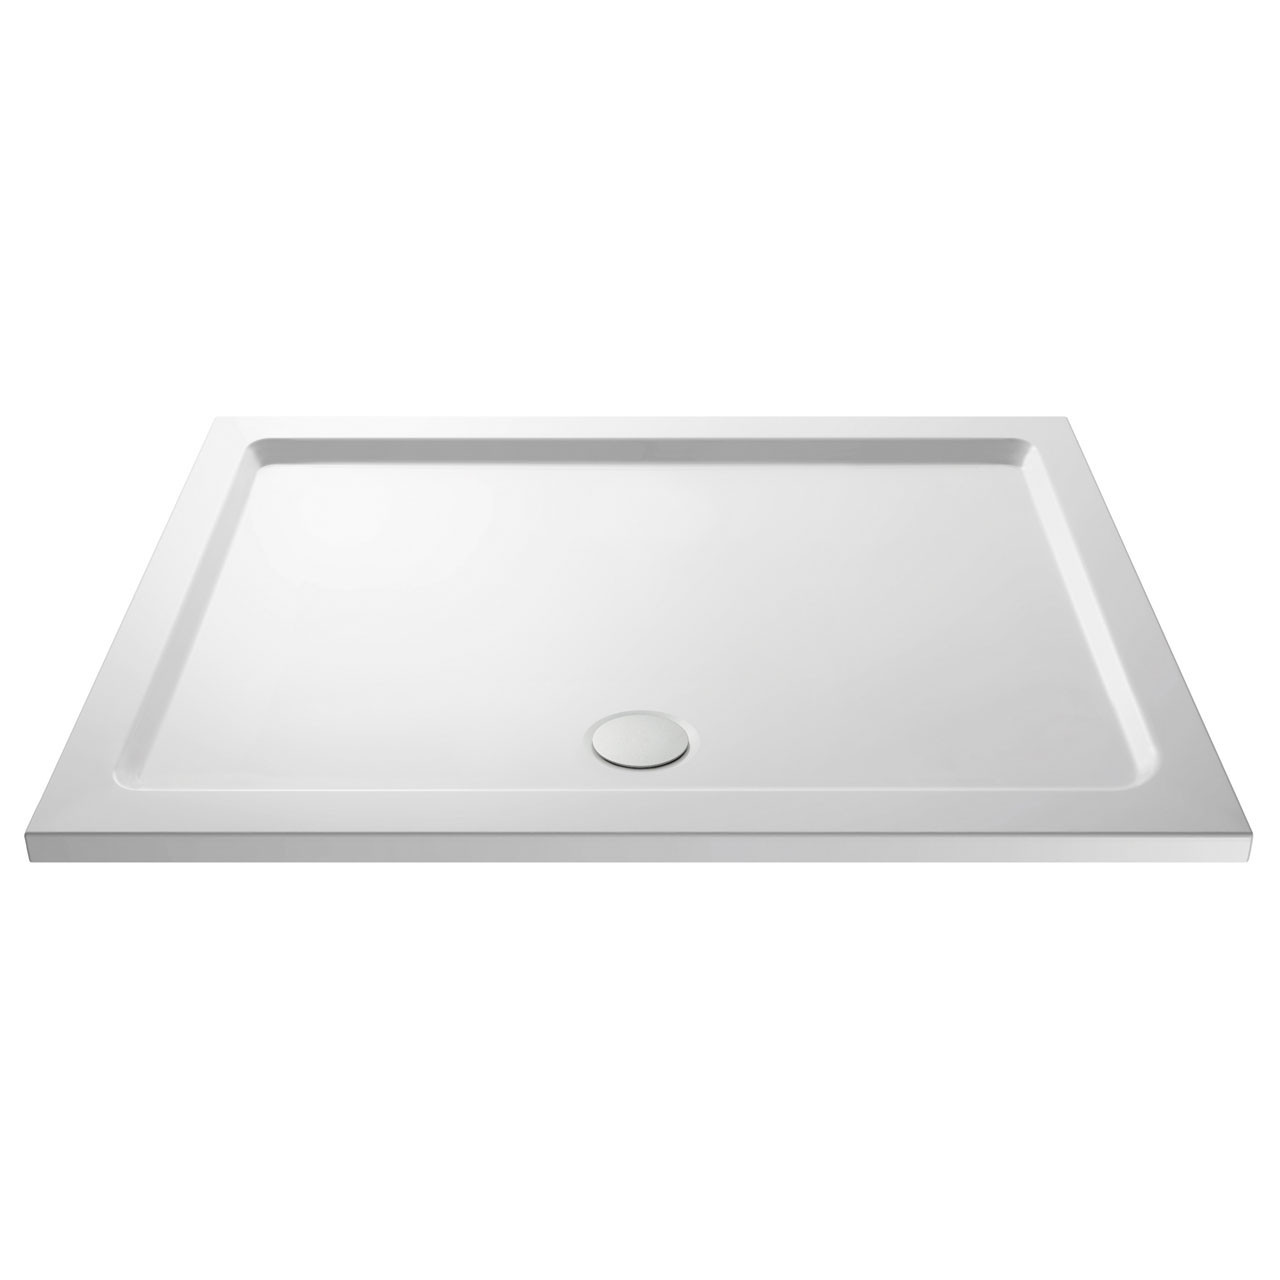 Nuie Pearlstone 1200mm x 1000mm Rectangular Shower Tray with Centre Waste - NTP025